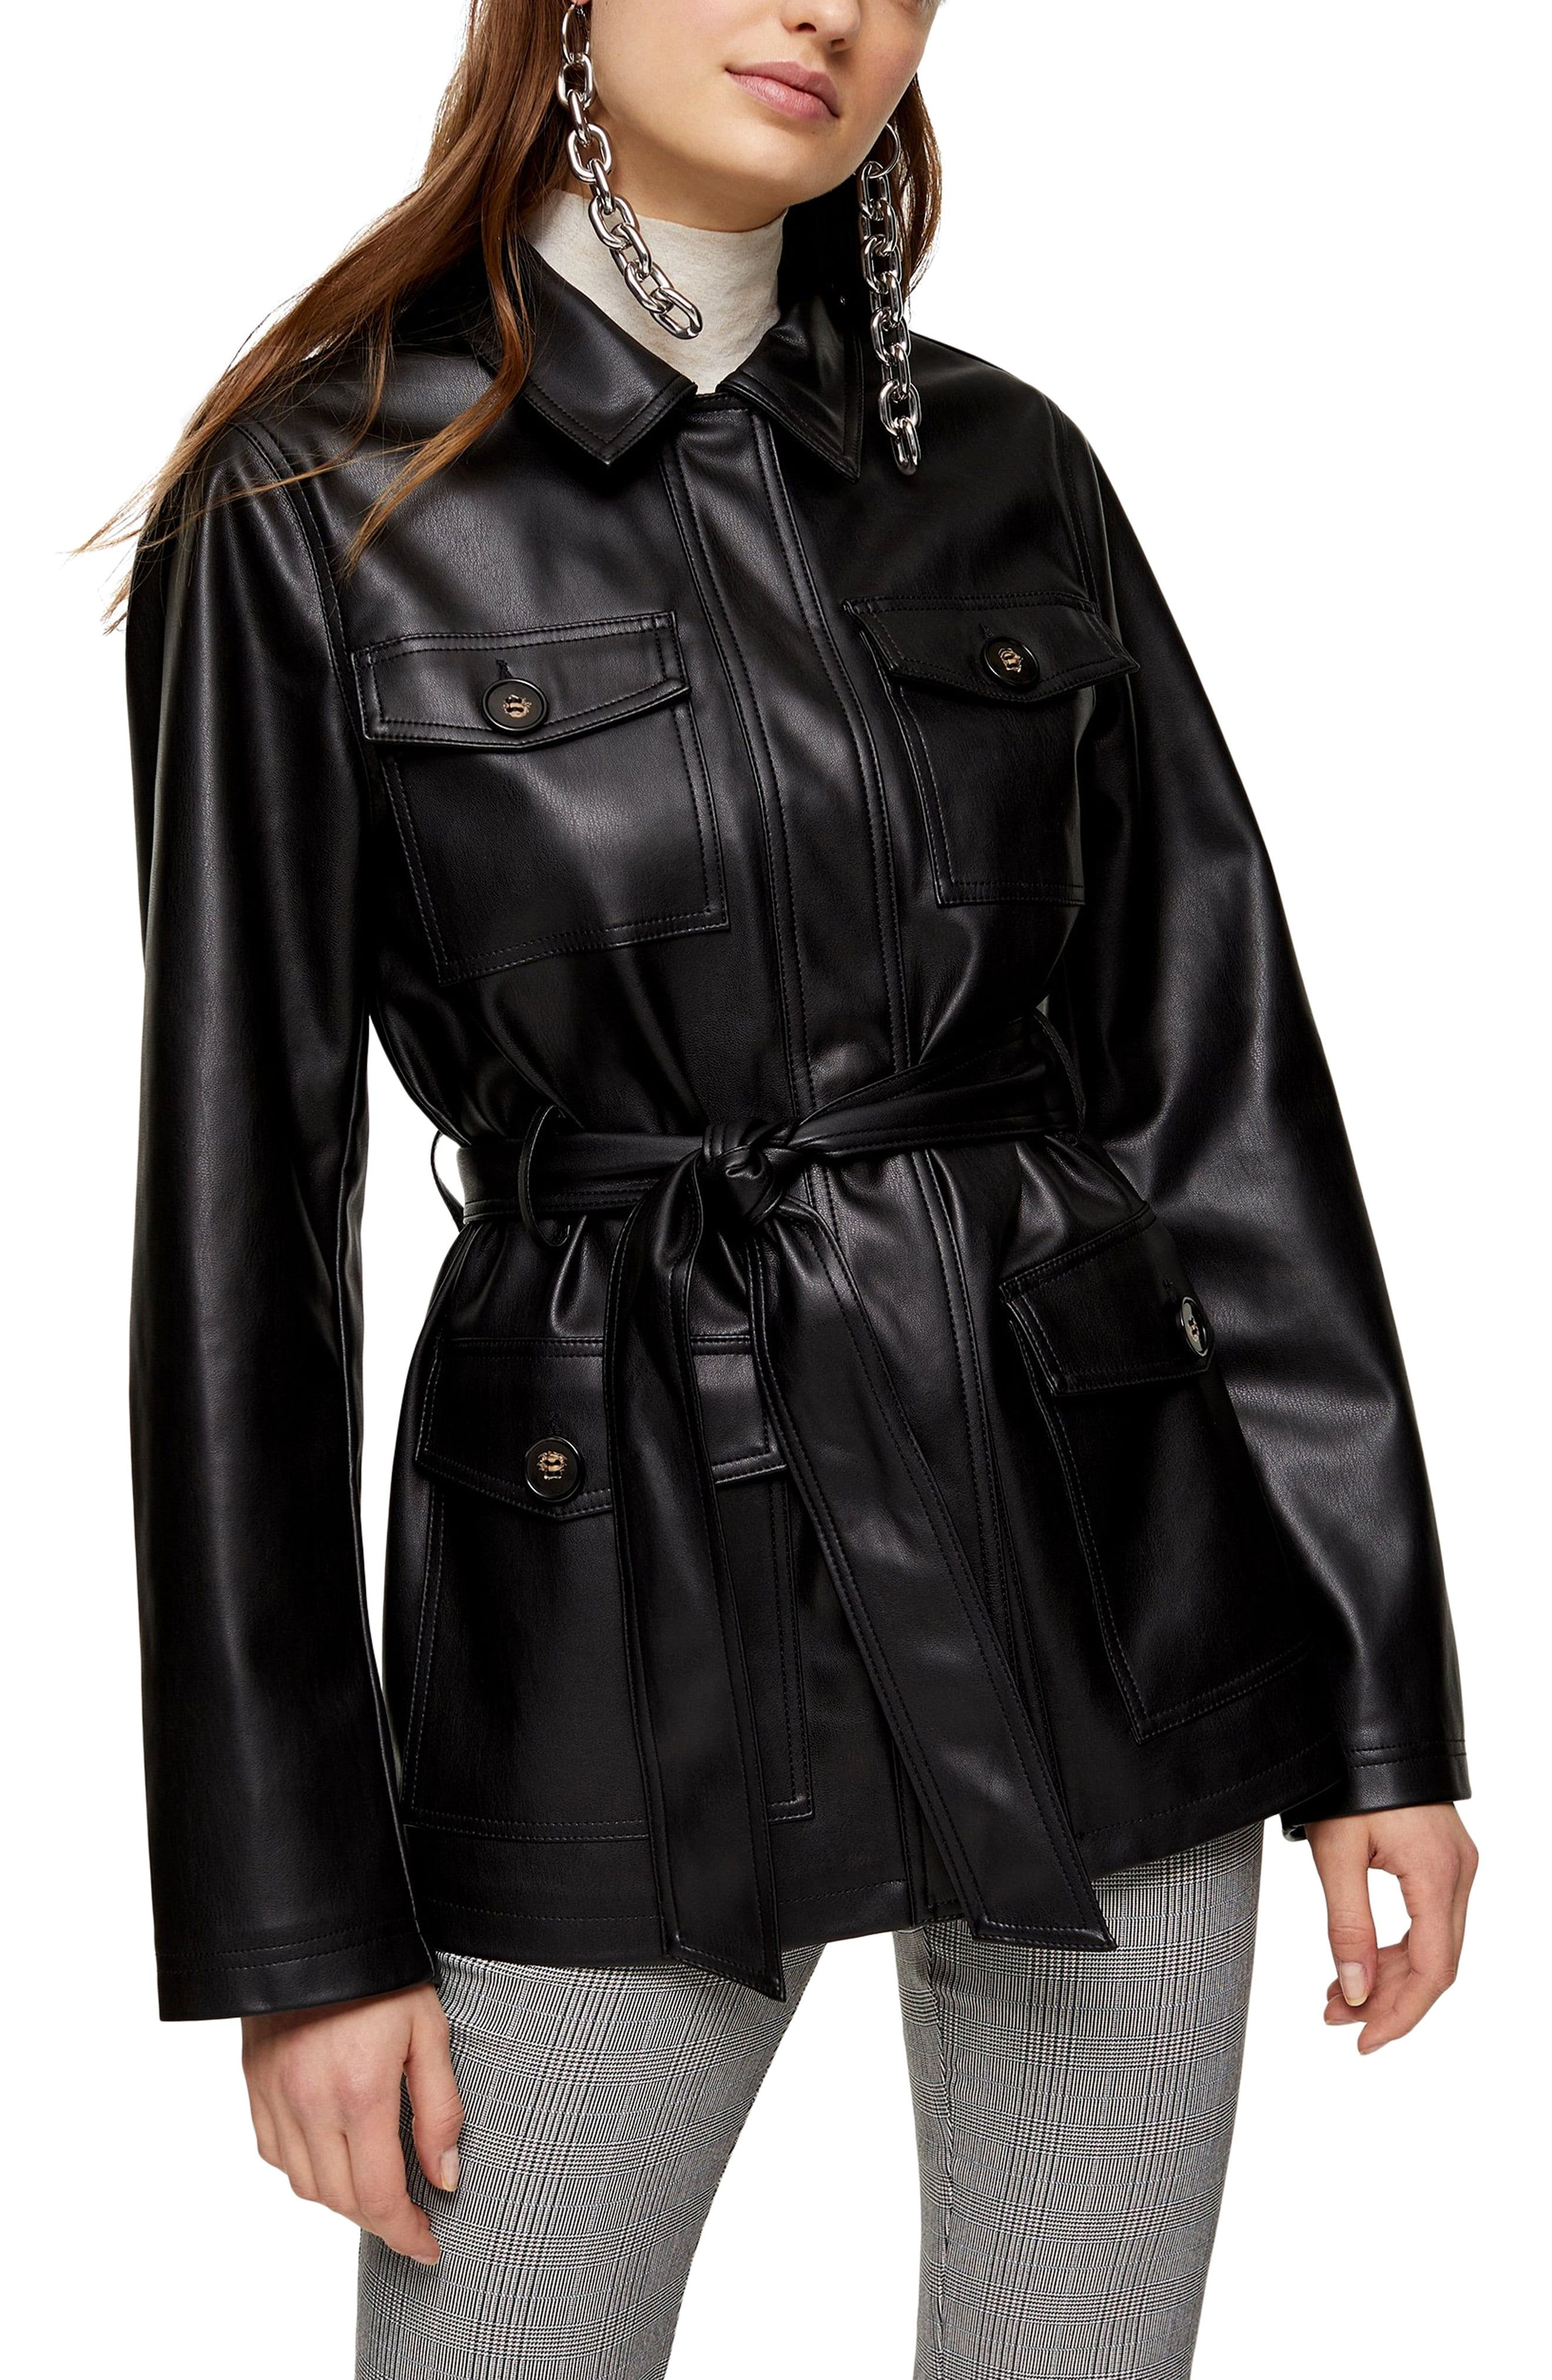 Topshop Belted Faux Leather Jacket Nordstrom Fashion Clothes Women Fashion Leather Jacket [ 4048 x 2640 Pixel ]